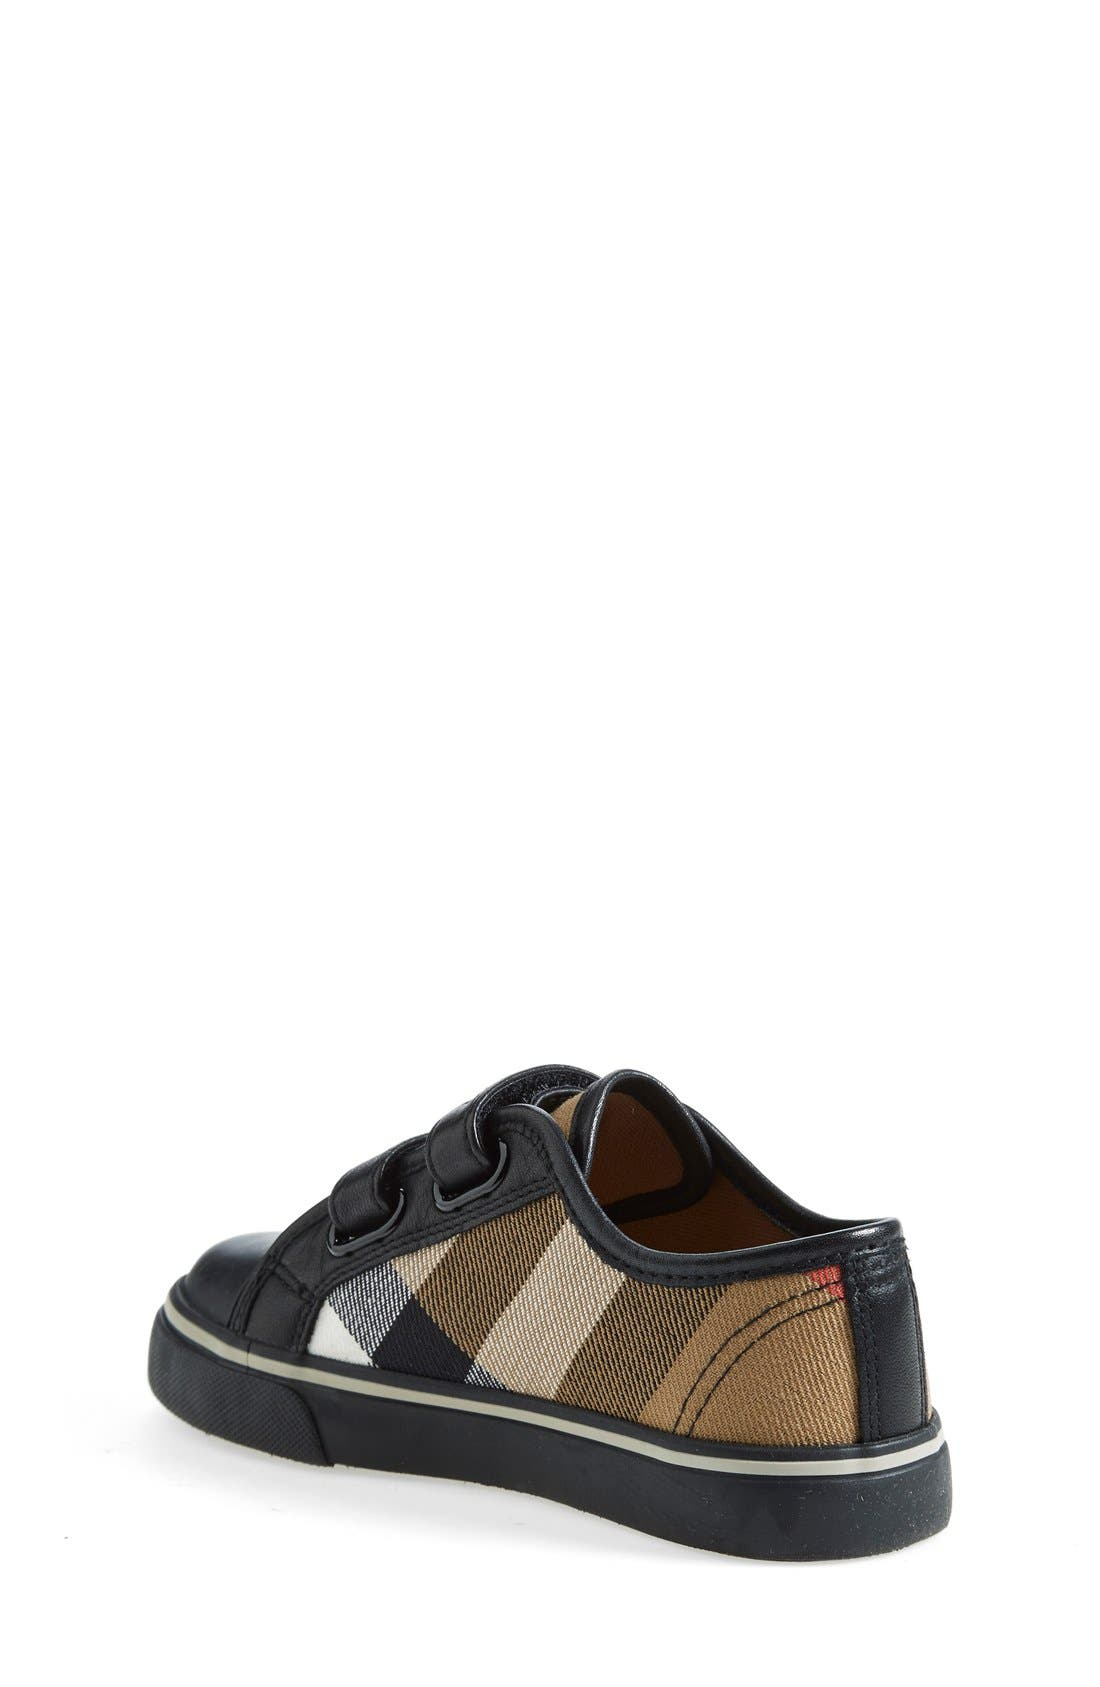 Alternate Image 2  - Burberry 'Pete' Sneaker (Baby, Walker, Toddler &  Little Kid)